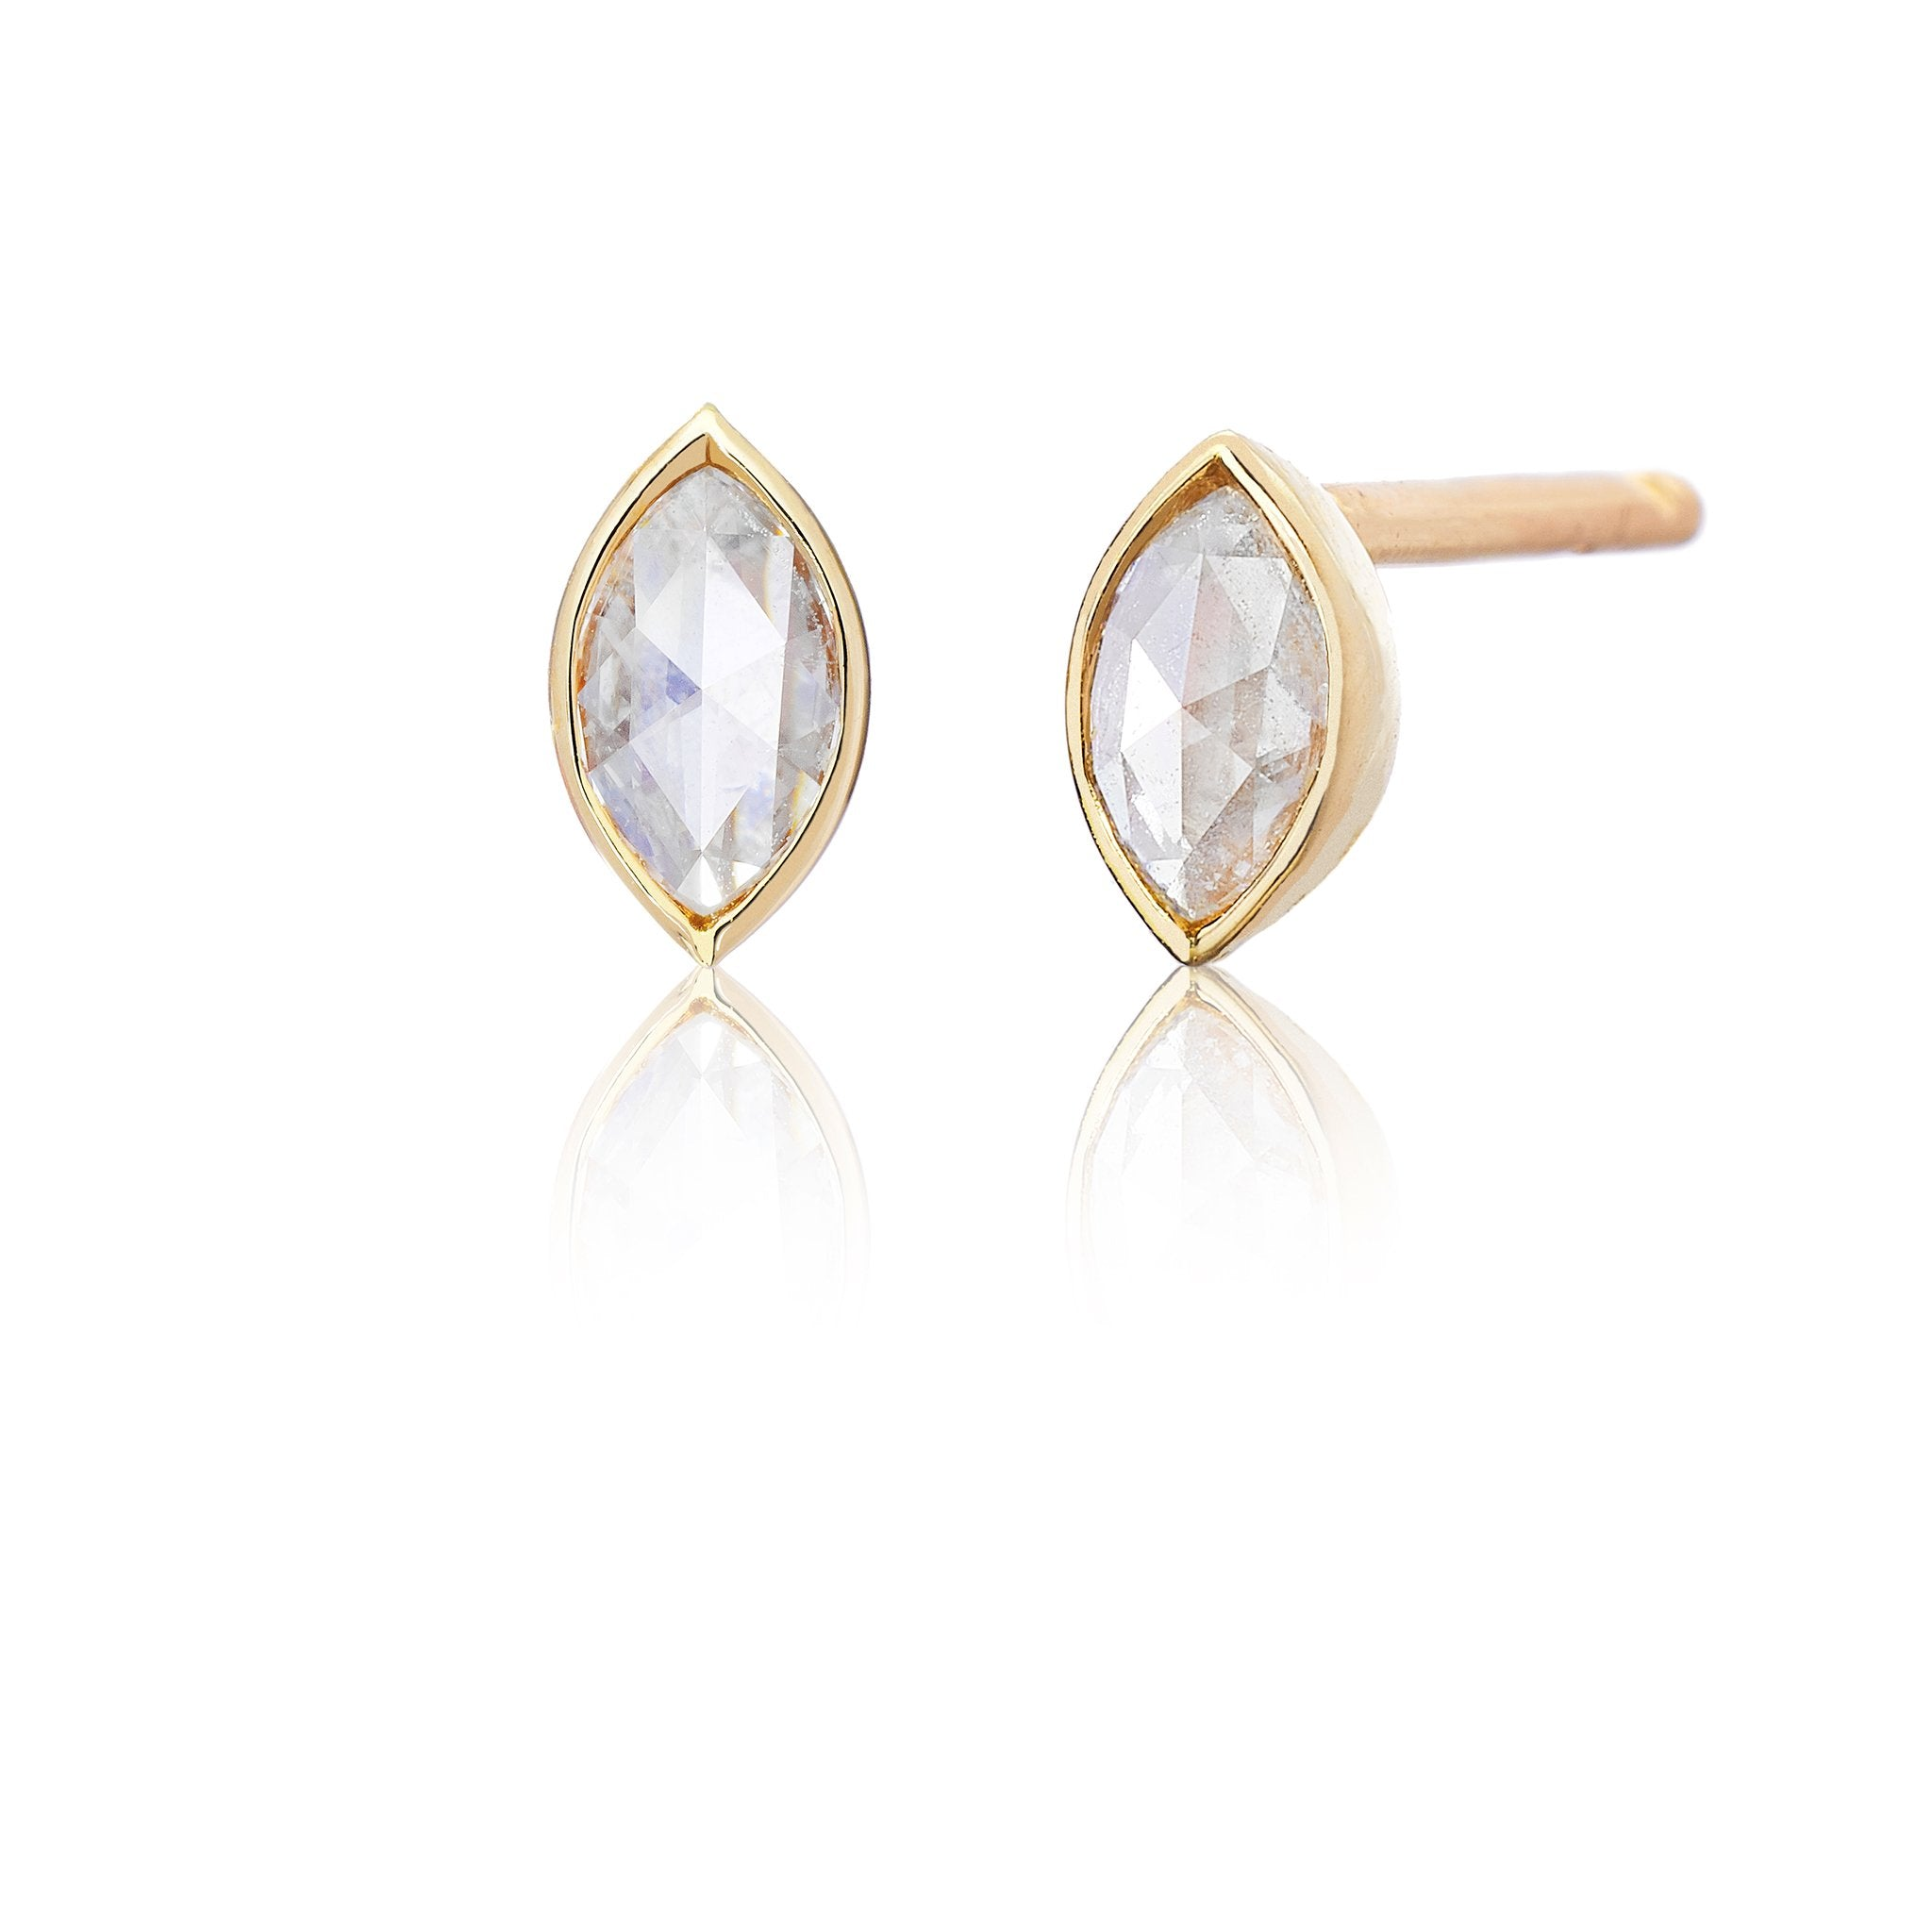 The Reina Earrings